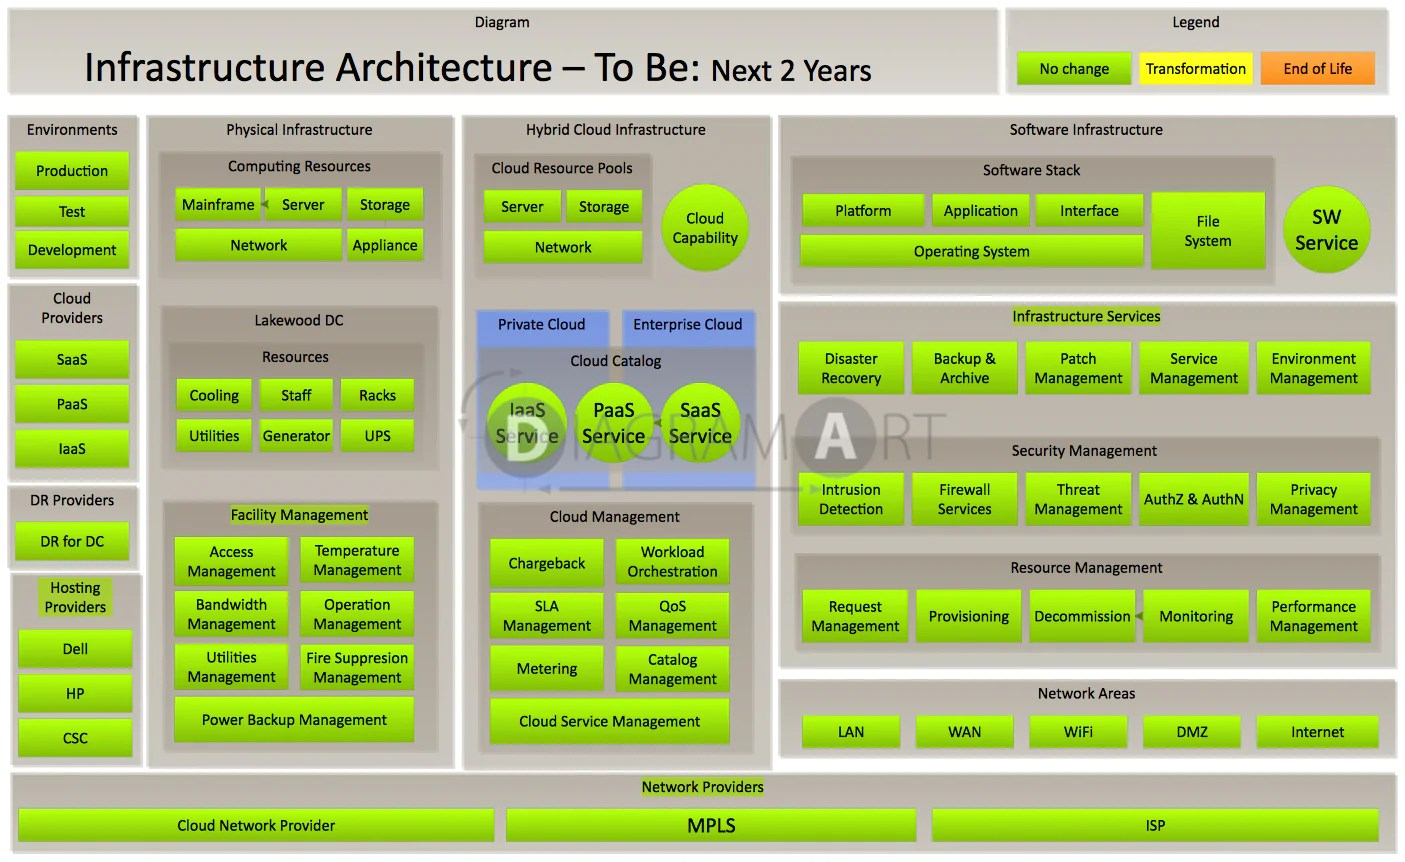 infrastructure architecture visio diagram solar panel wire reference framework for to